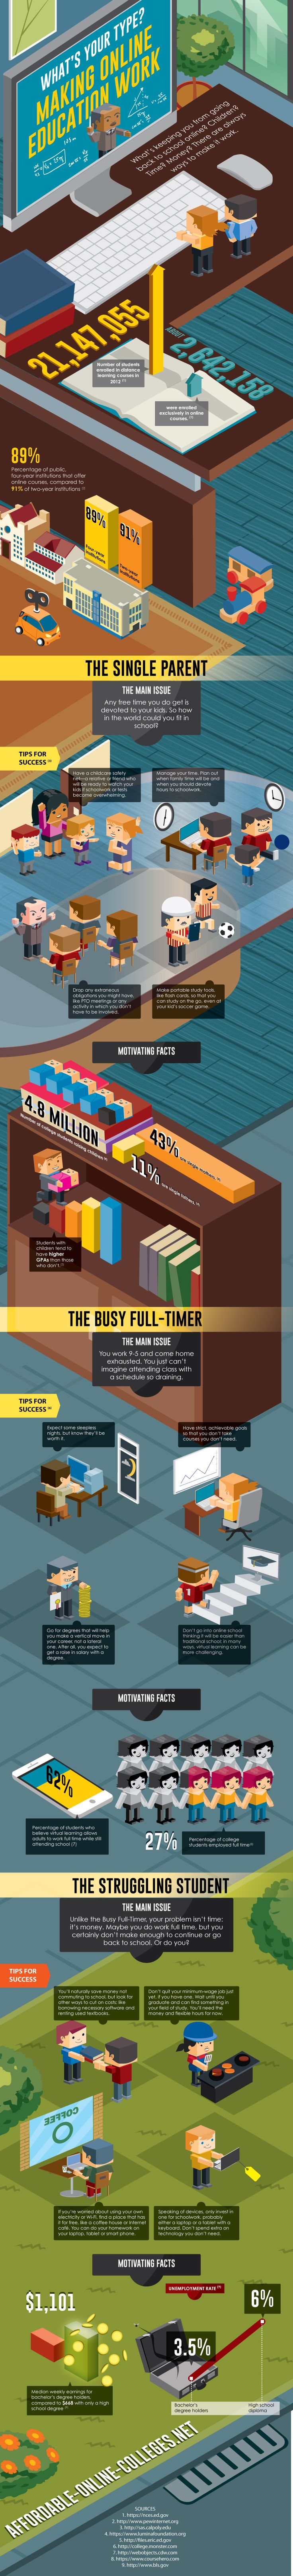 Making Online Education Work Infographic - http://elearninginfographics.com/making-online-education-work-infographic/